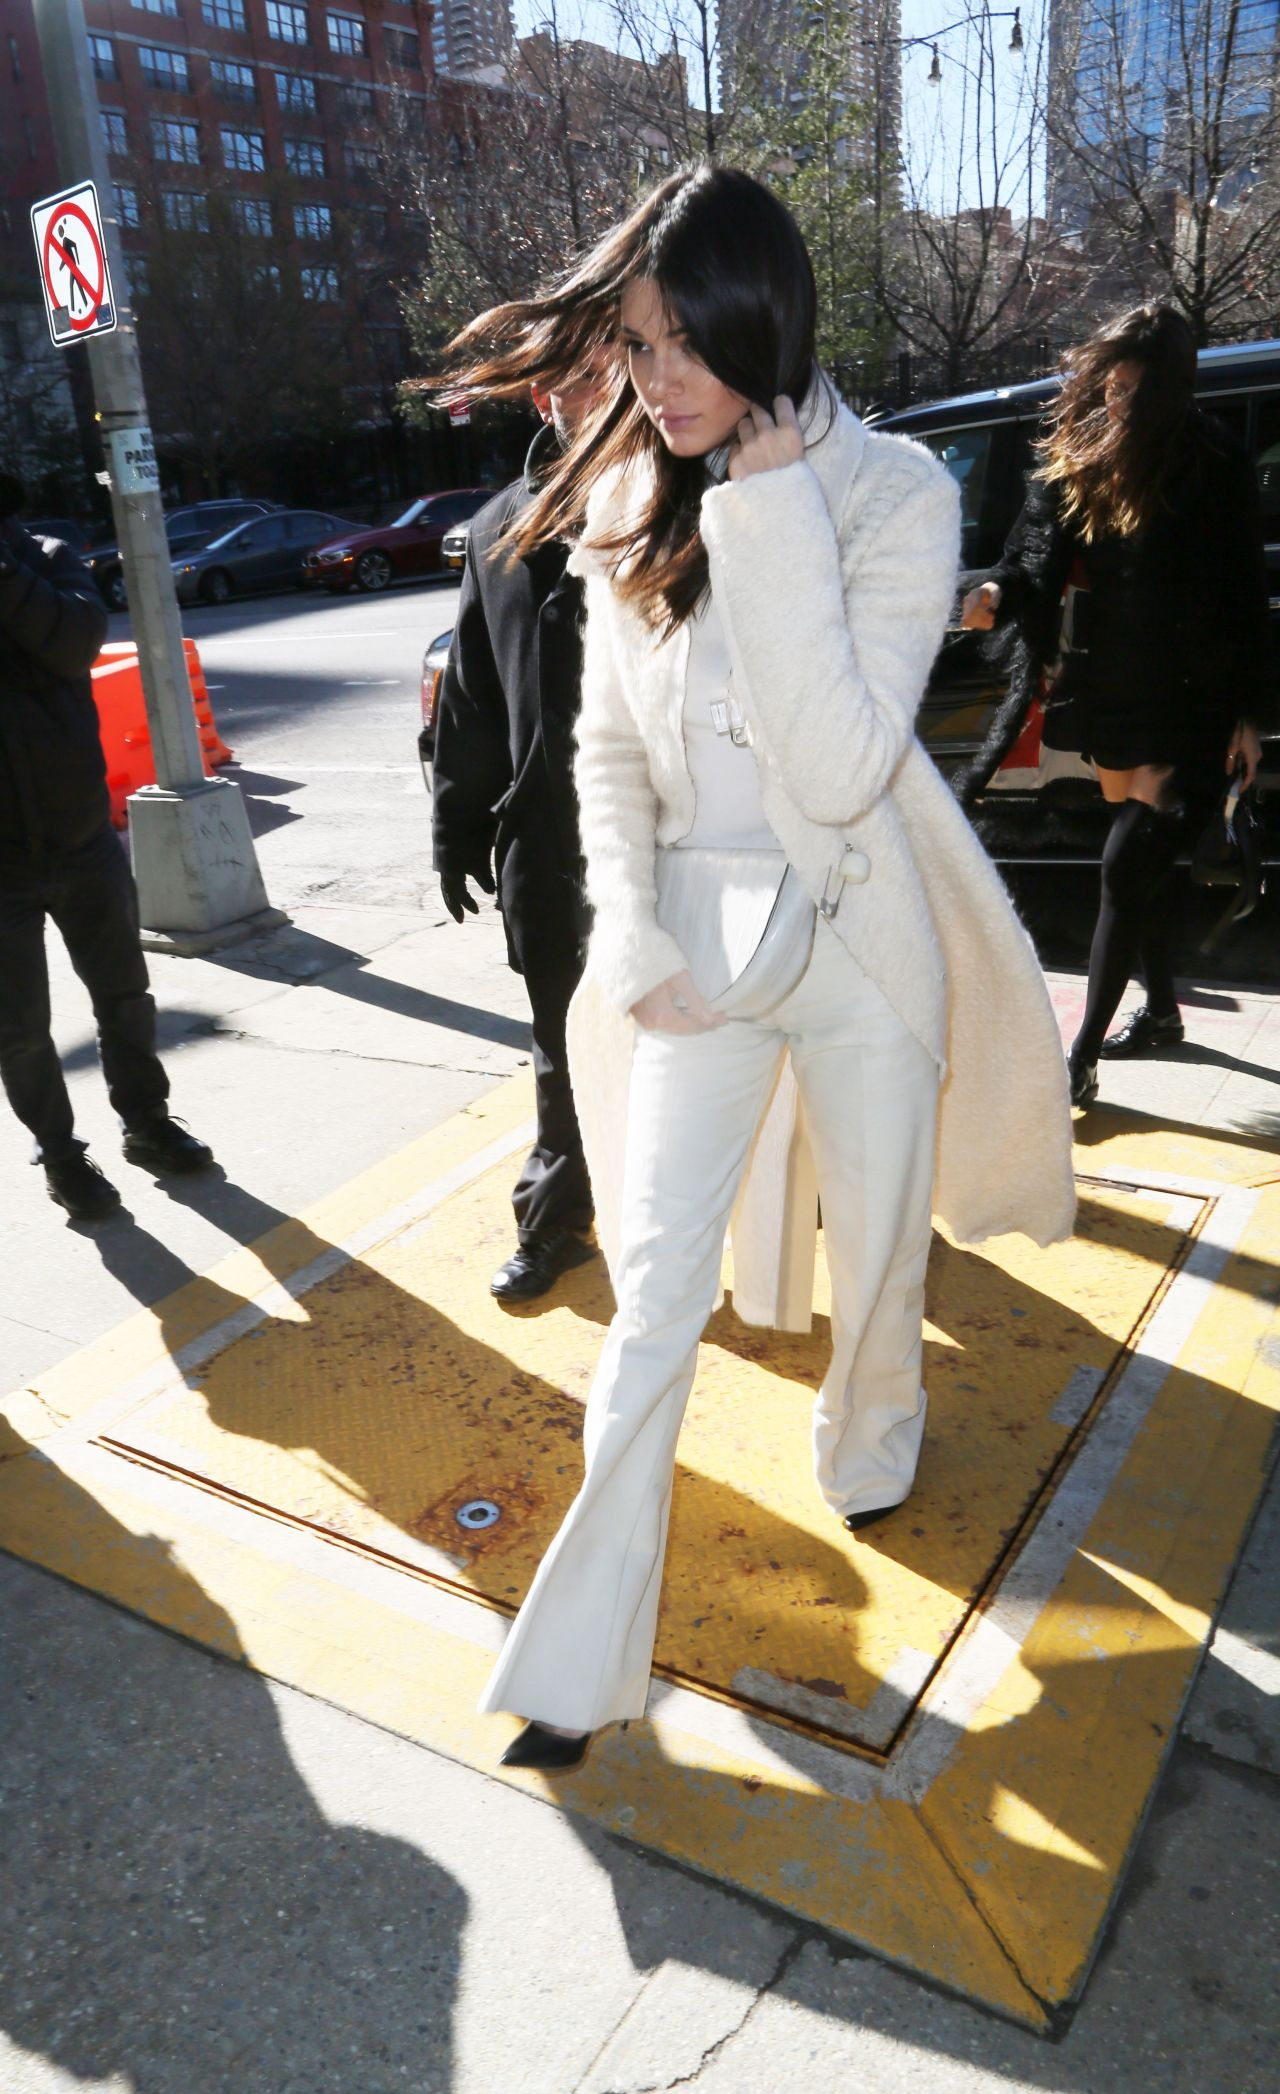 kendall-jenner-leaving-calvin-klein-fashion-show-in-new-york-city-february-2016-3